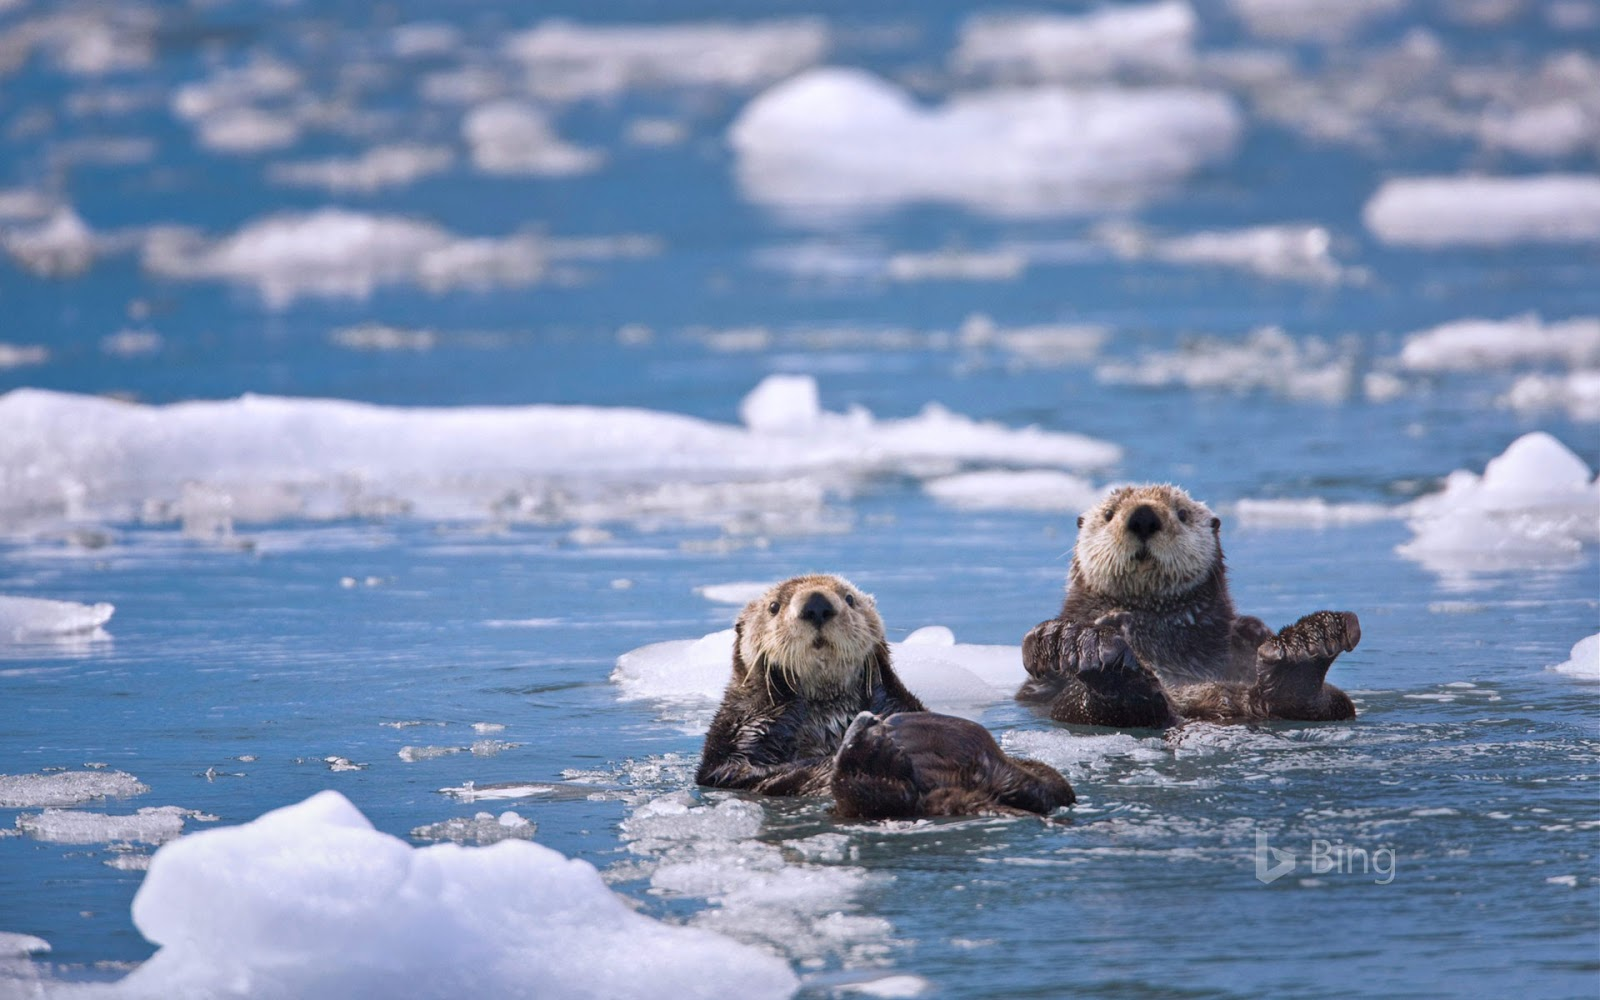 Sea otters in Prince William Sound, Alaska, 30 years after the Exxon Valdez oil spill © Patrick Endres/plainpicture